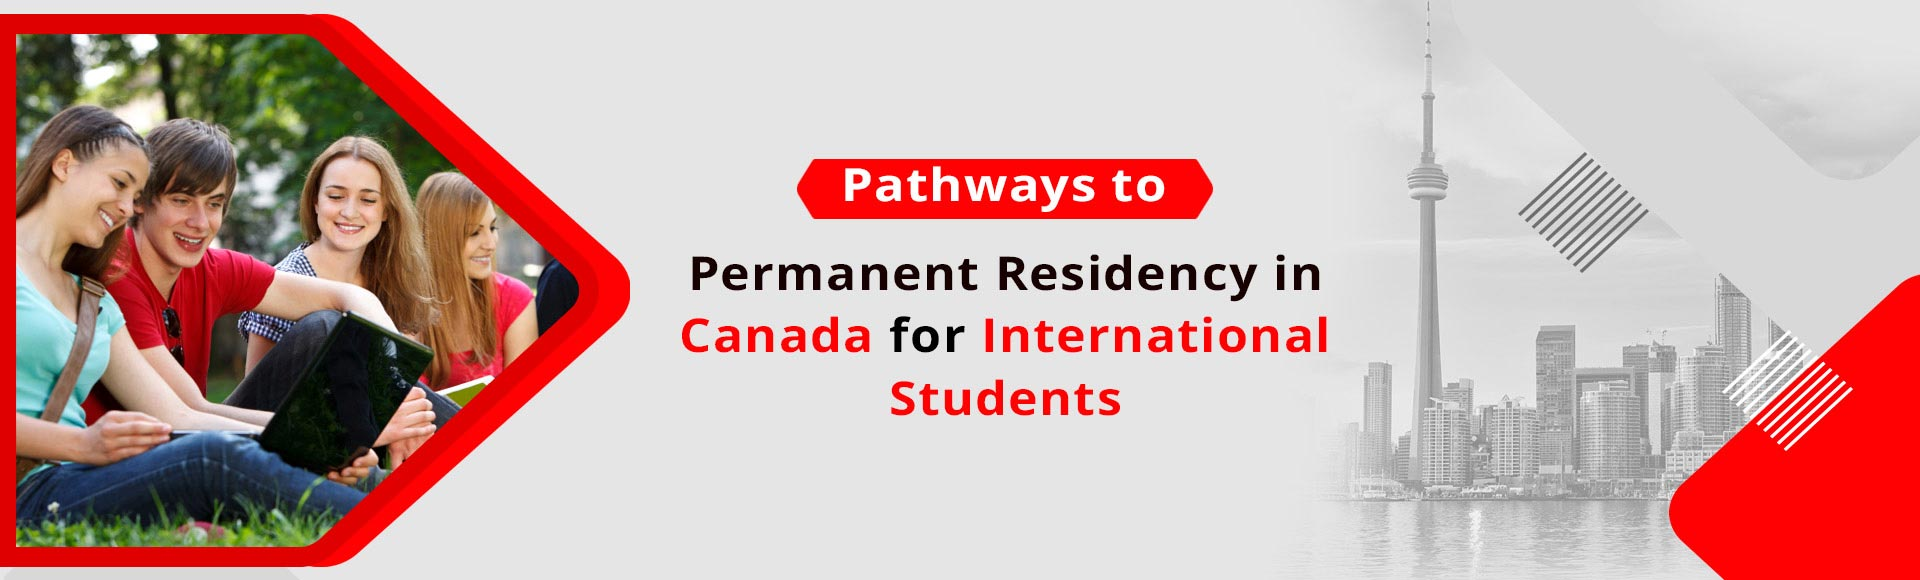 Pathways to Permanent Residency in Canada for International Students